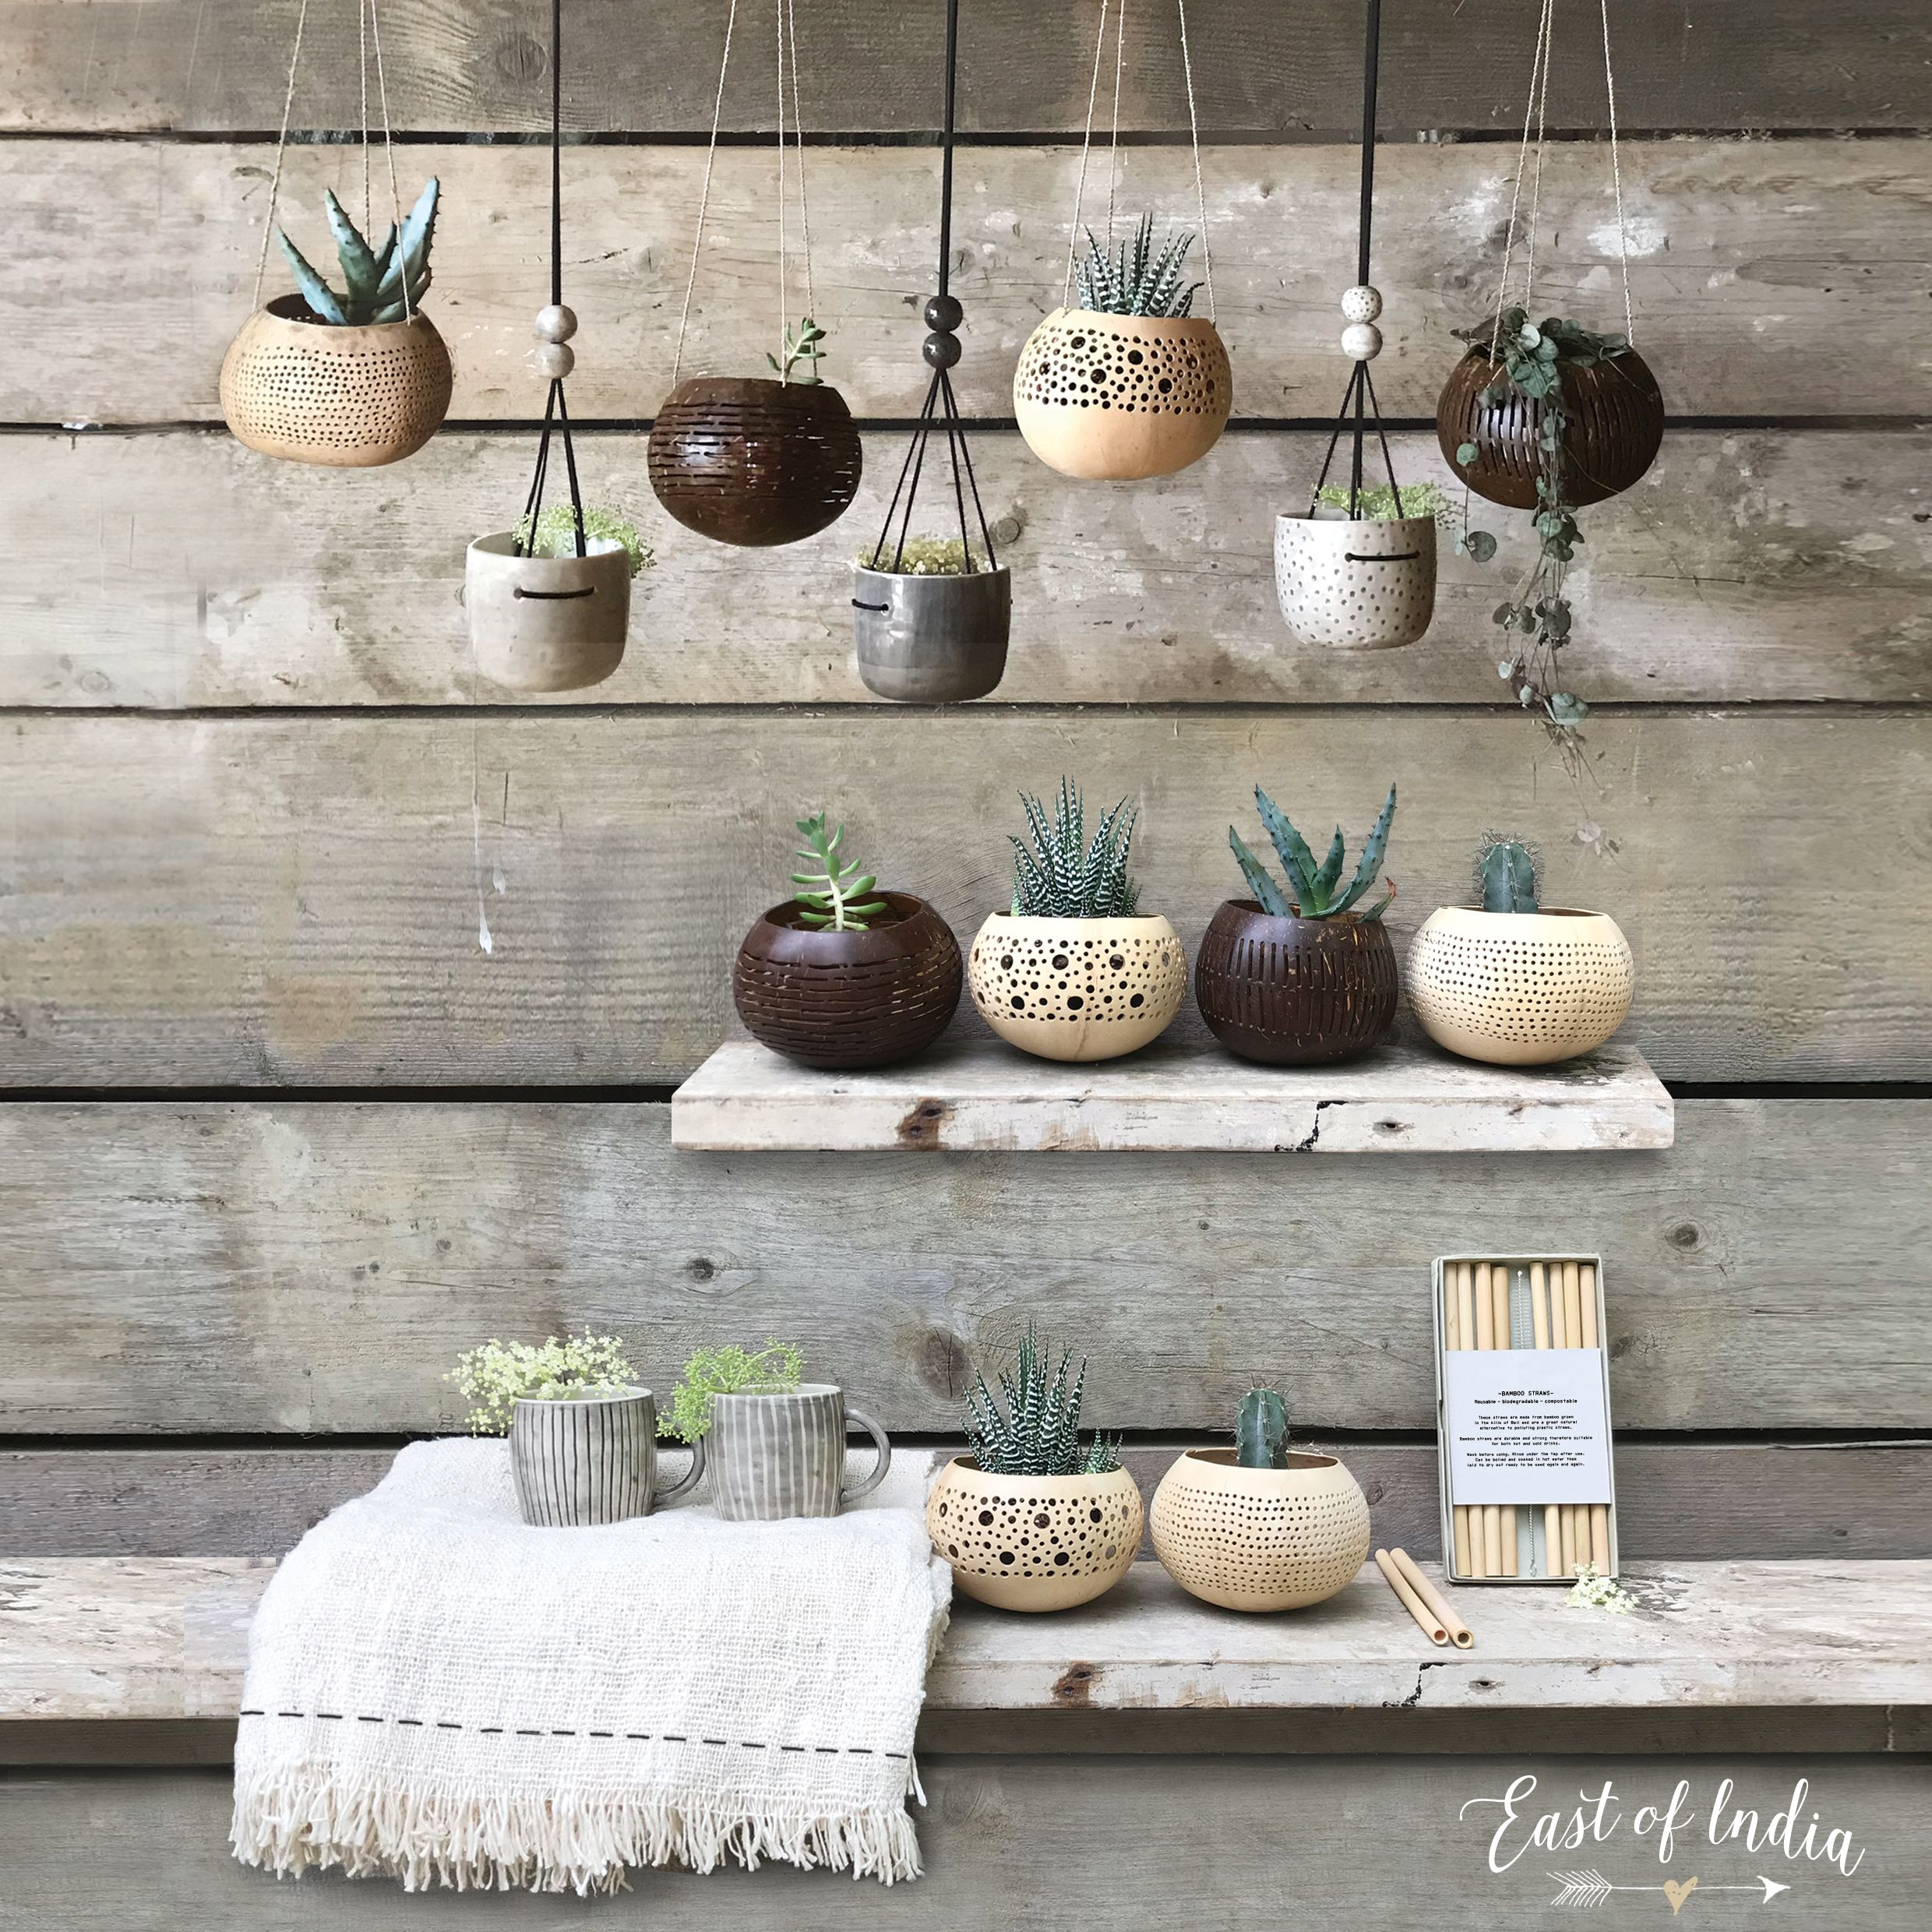 Pin by East of India on East of India Planter pots